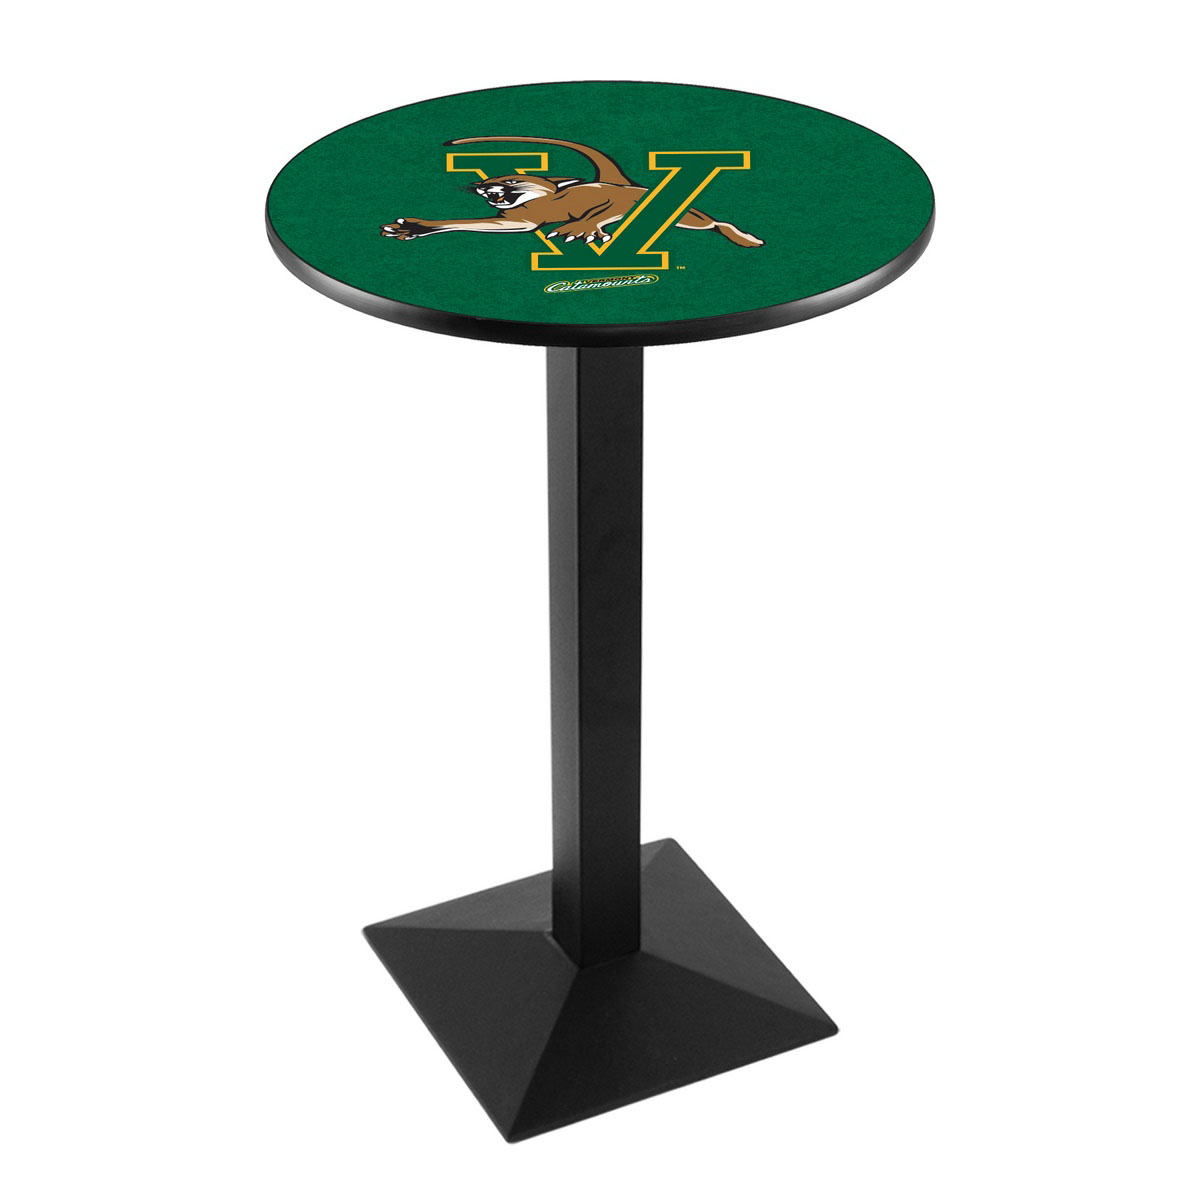 Impressive University Vermont Logo Pub Bar Table Square Stand 8 392